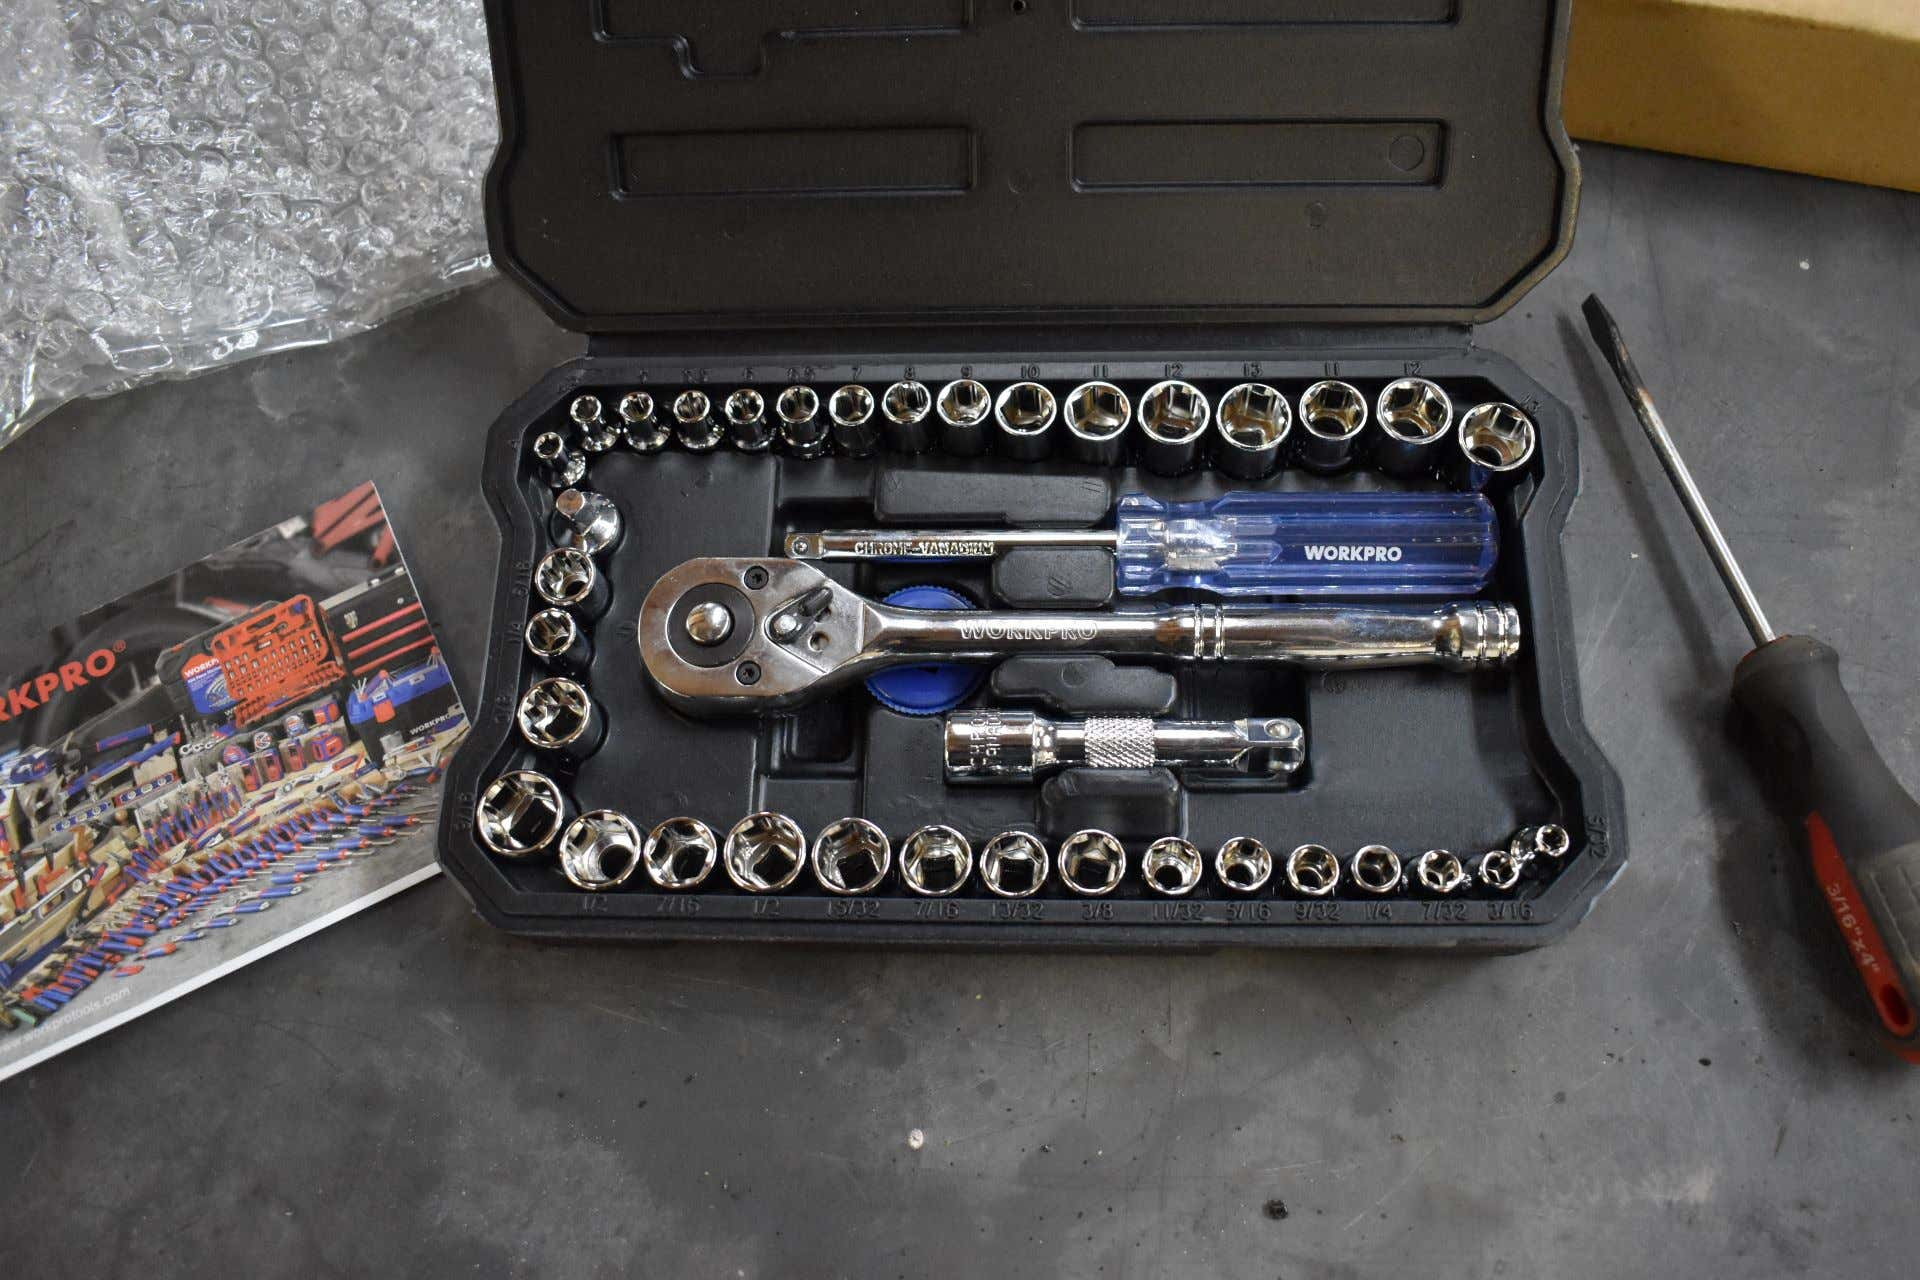 Unboxing the workpro tool set